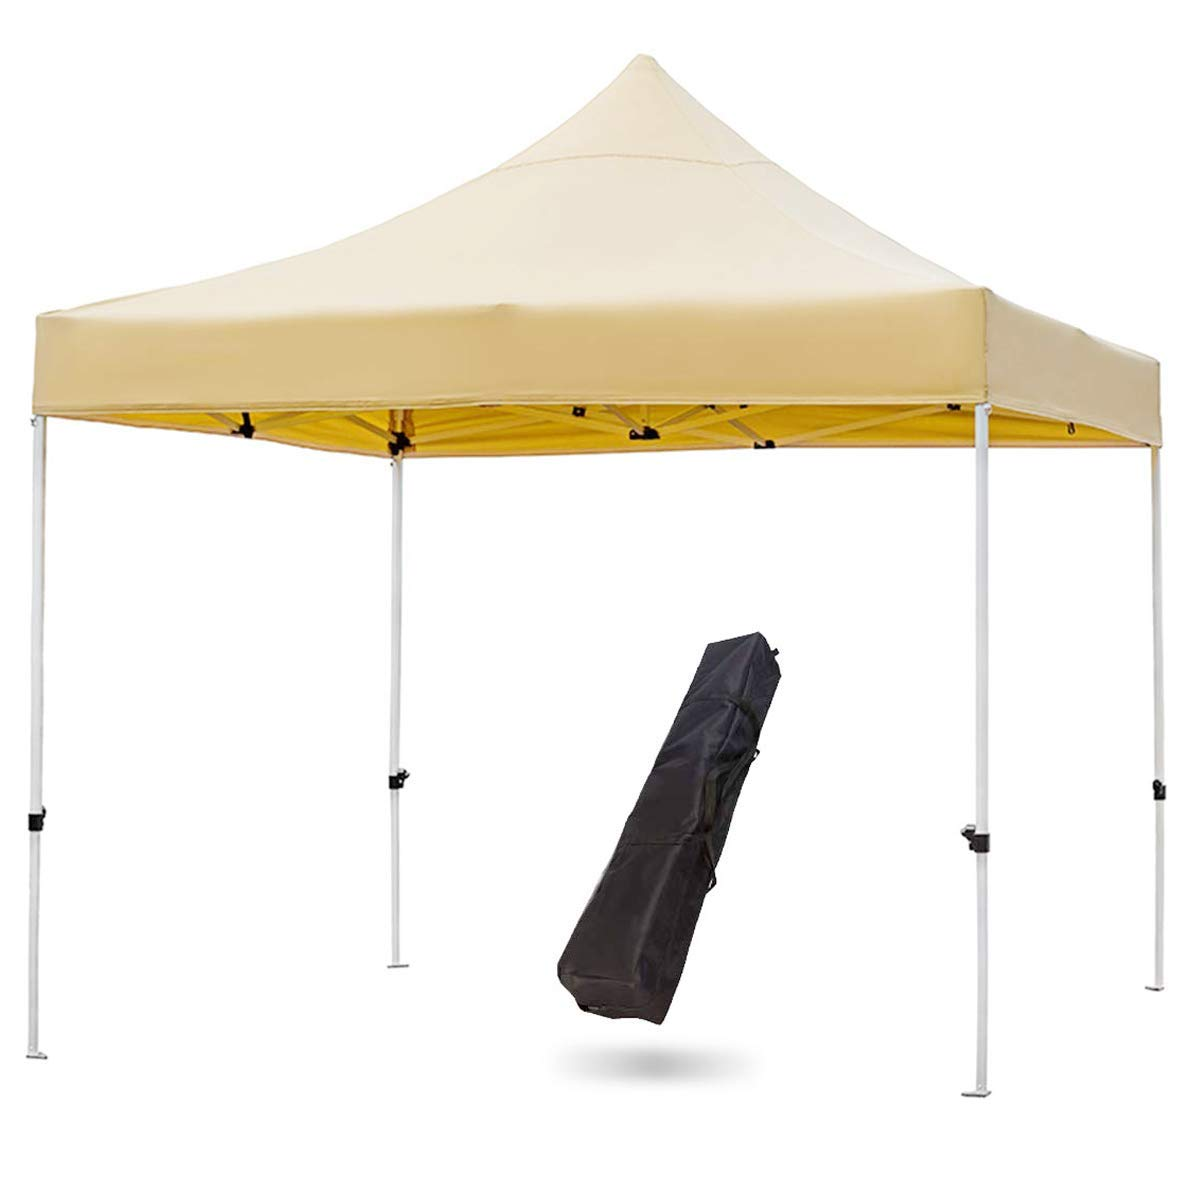 SNAIL Commercial Grade 10 x10 Outdoor Easy Pop Up Canopy Tent with Heavy Duty Aluminum Straight Leg and 420D Waterproof Top, Portable Event Party Shade Shelter with Carry Bag, Khaki